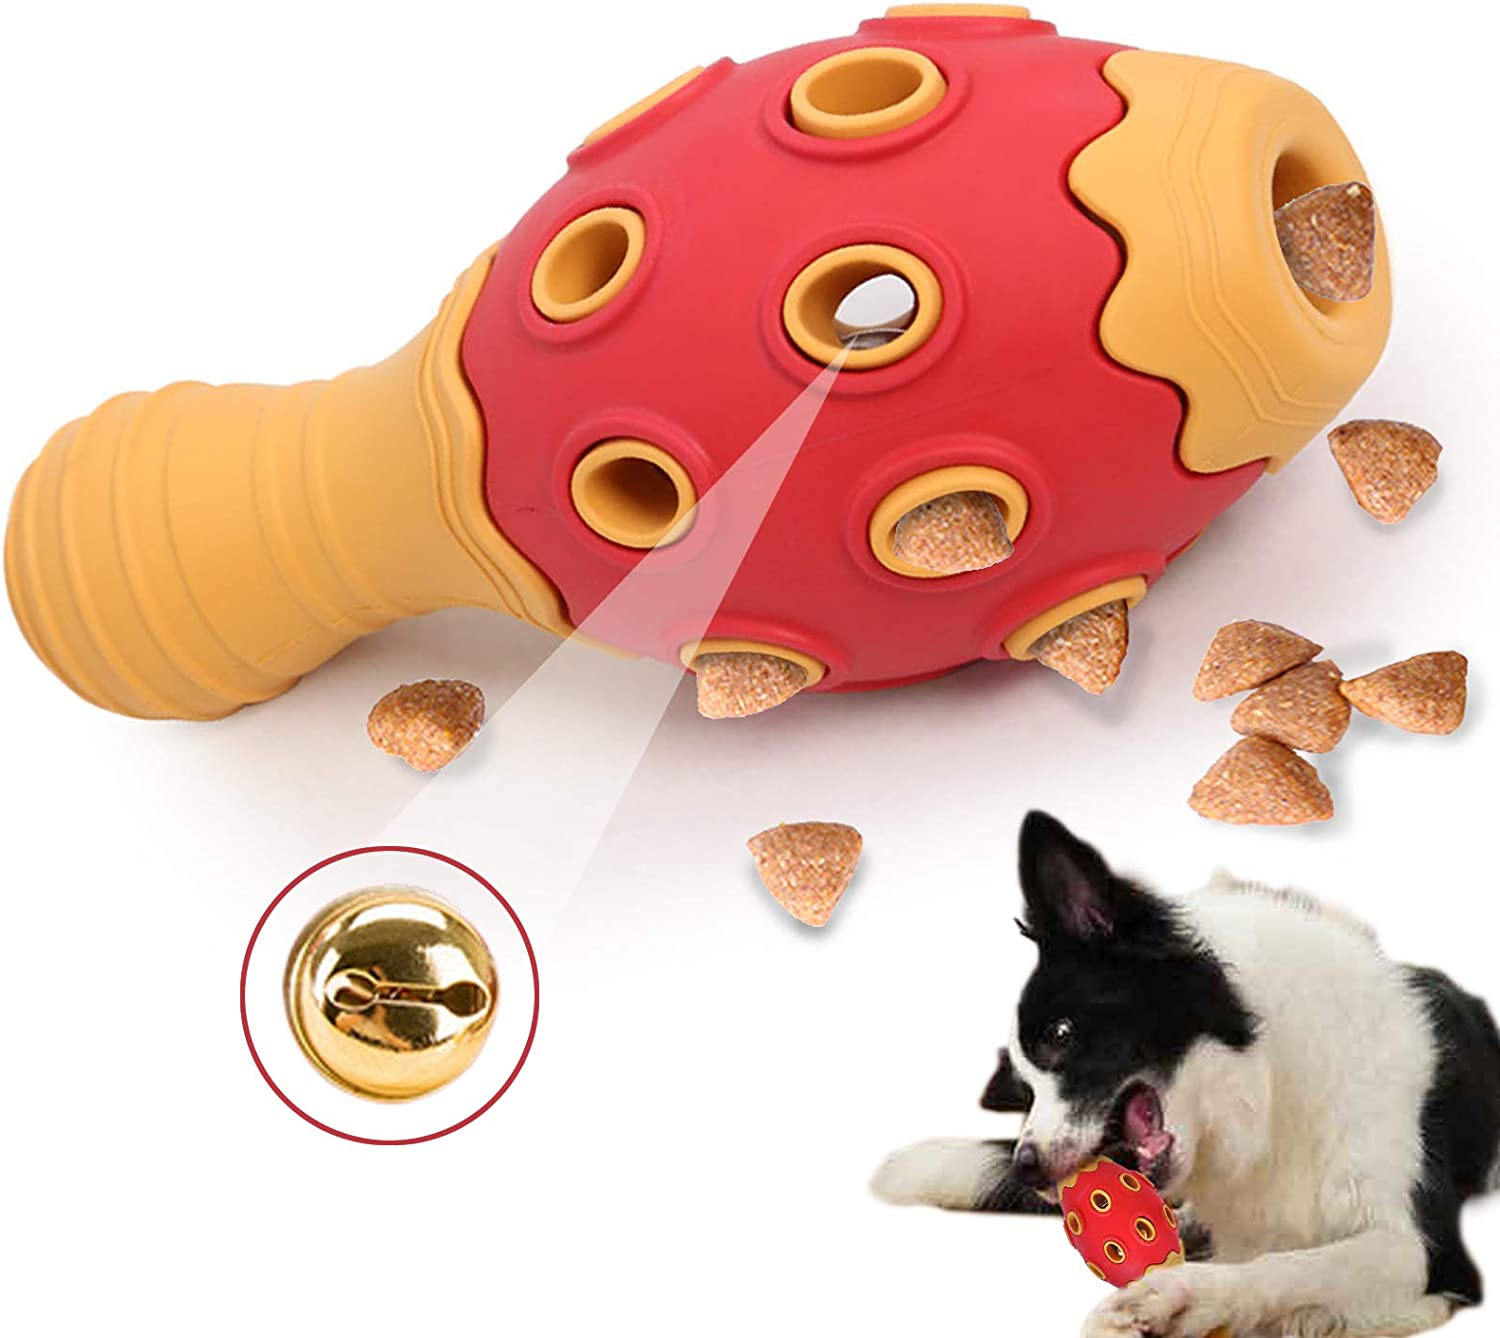 Bowling Dog Chew Toys for Aggressive Chewer, Natural Rubber Food Dispensing Dog Puzzle Toys, Multifunctional Interactive Vocal Puzzle Leaking Bowling Ball Toys for Small Medium Large Dogs (Red-orange)